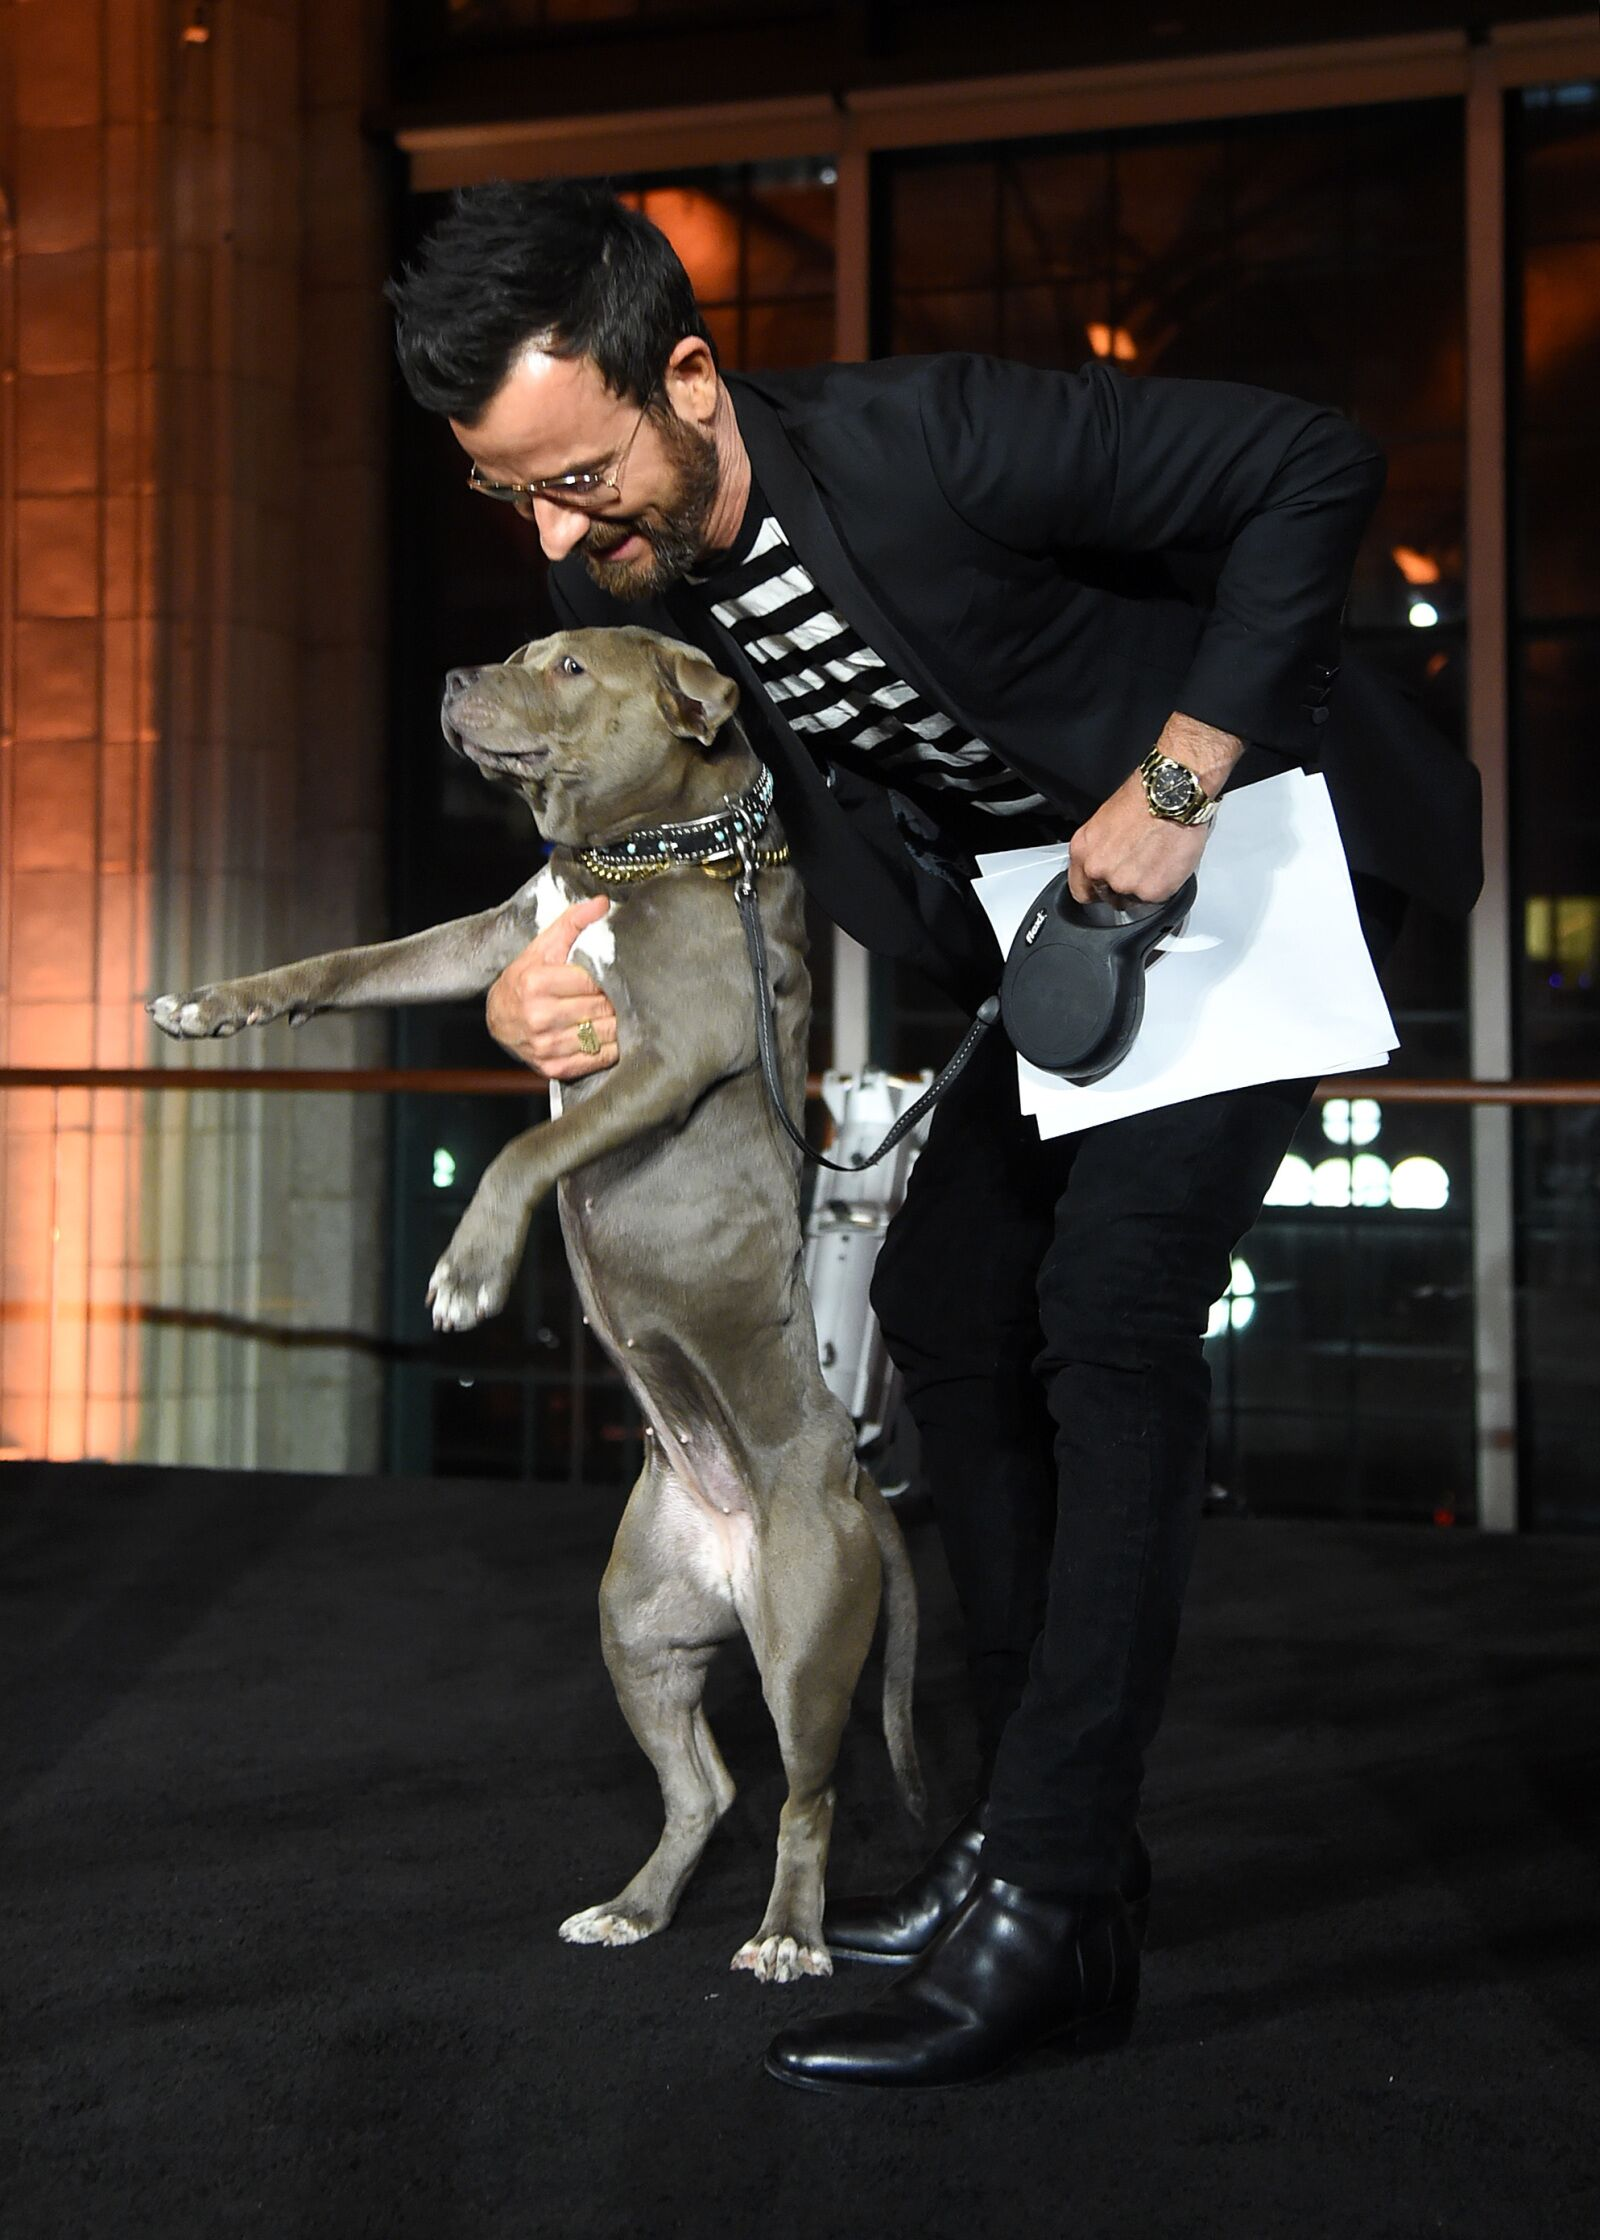 Justin Theroux's dog makes cameo in 2019 Lady and the Tramp